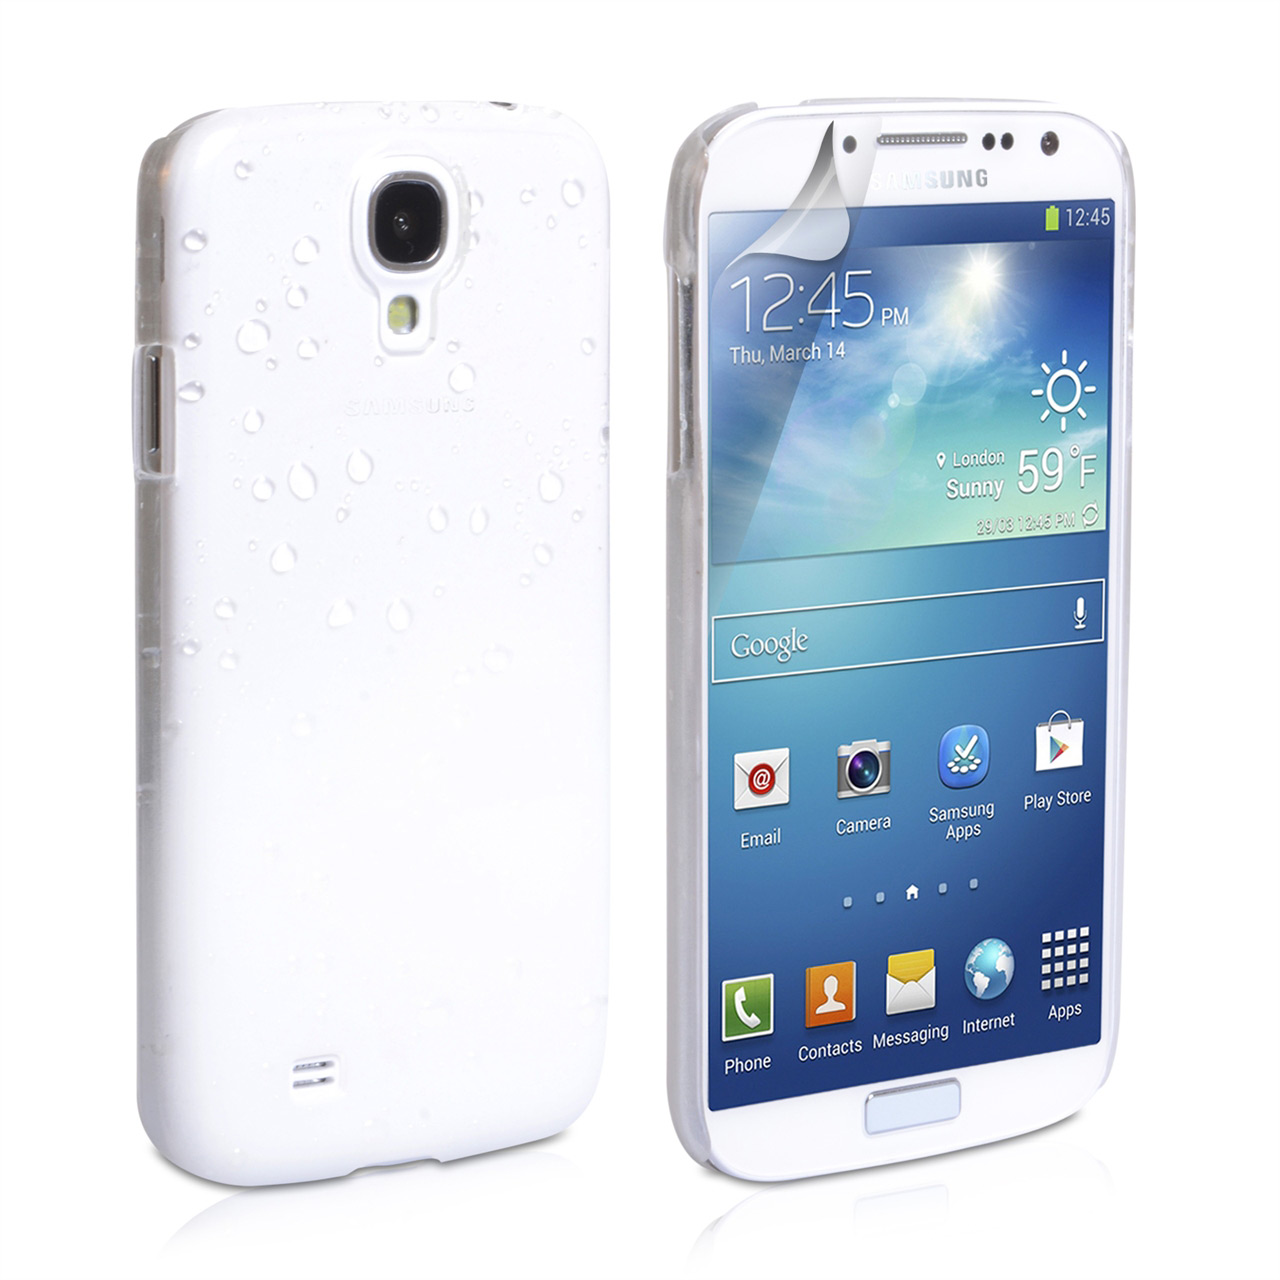 YouSave Accessories Samsung Galaxy S4 Raindrop Hard Case - White/Clear